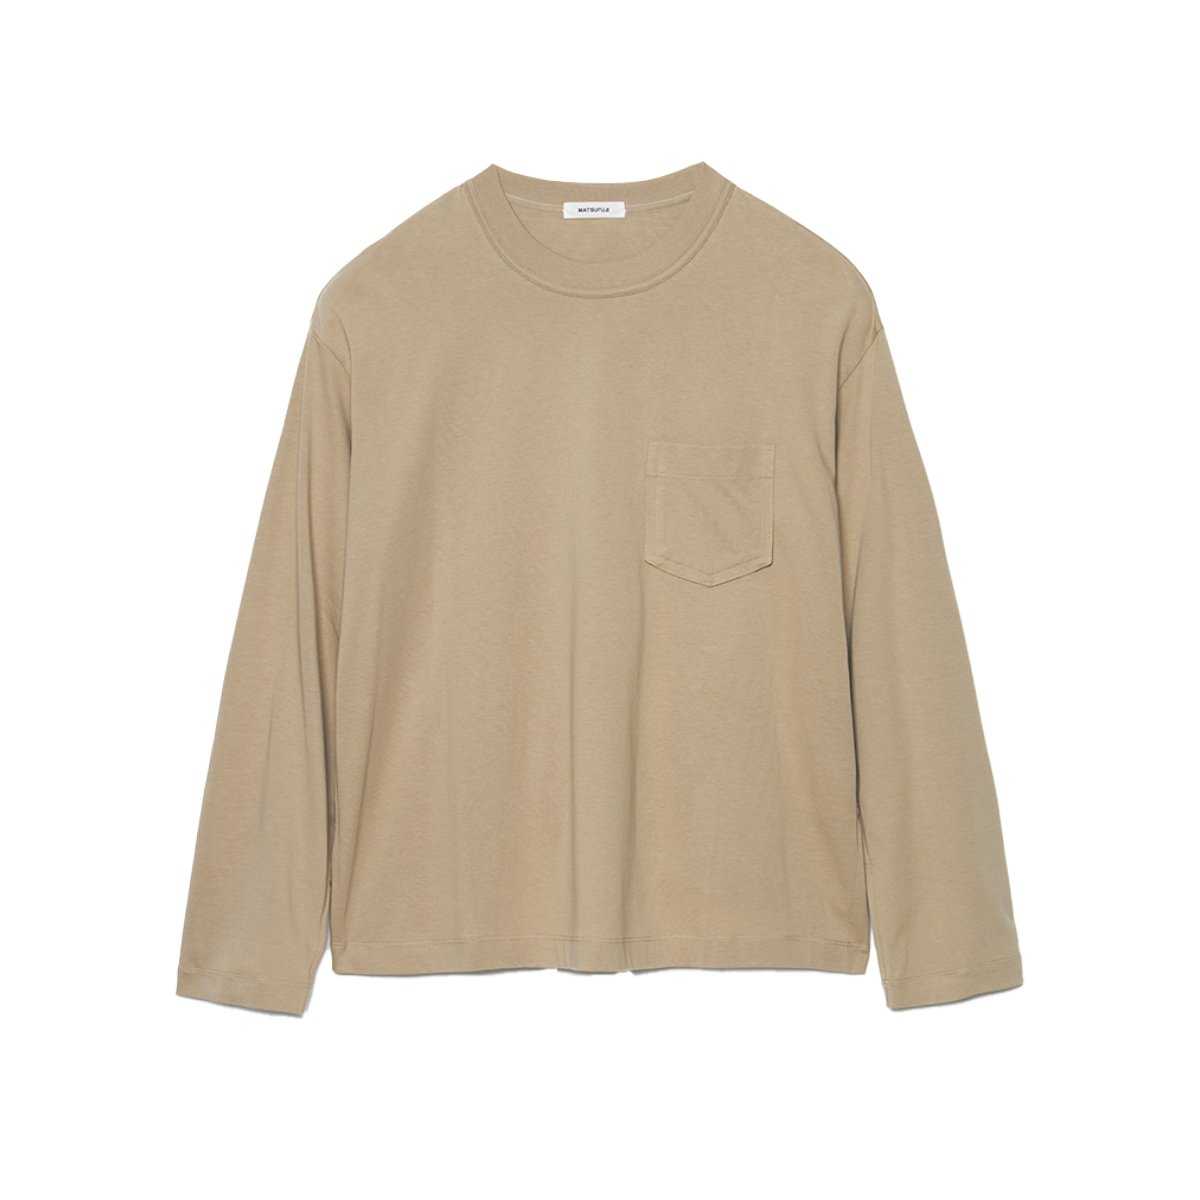 <img class='new_mark_img1' src='https://img.shop-pro.jp/img/new/icons5.gif' style='border:none;display:inline;margin:0px;padding:0px;width:auto;' />Long Sleeve Pocket T-shirt / BEIGE